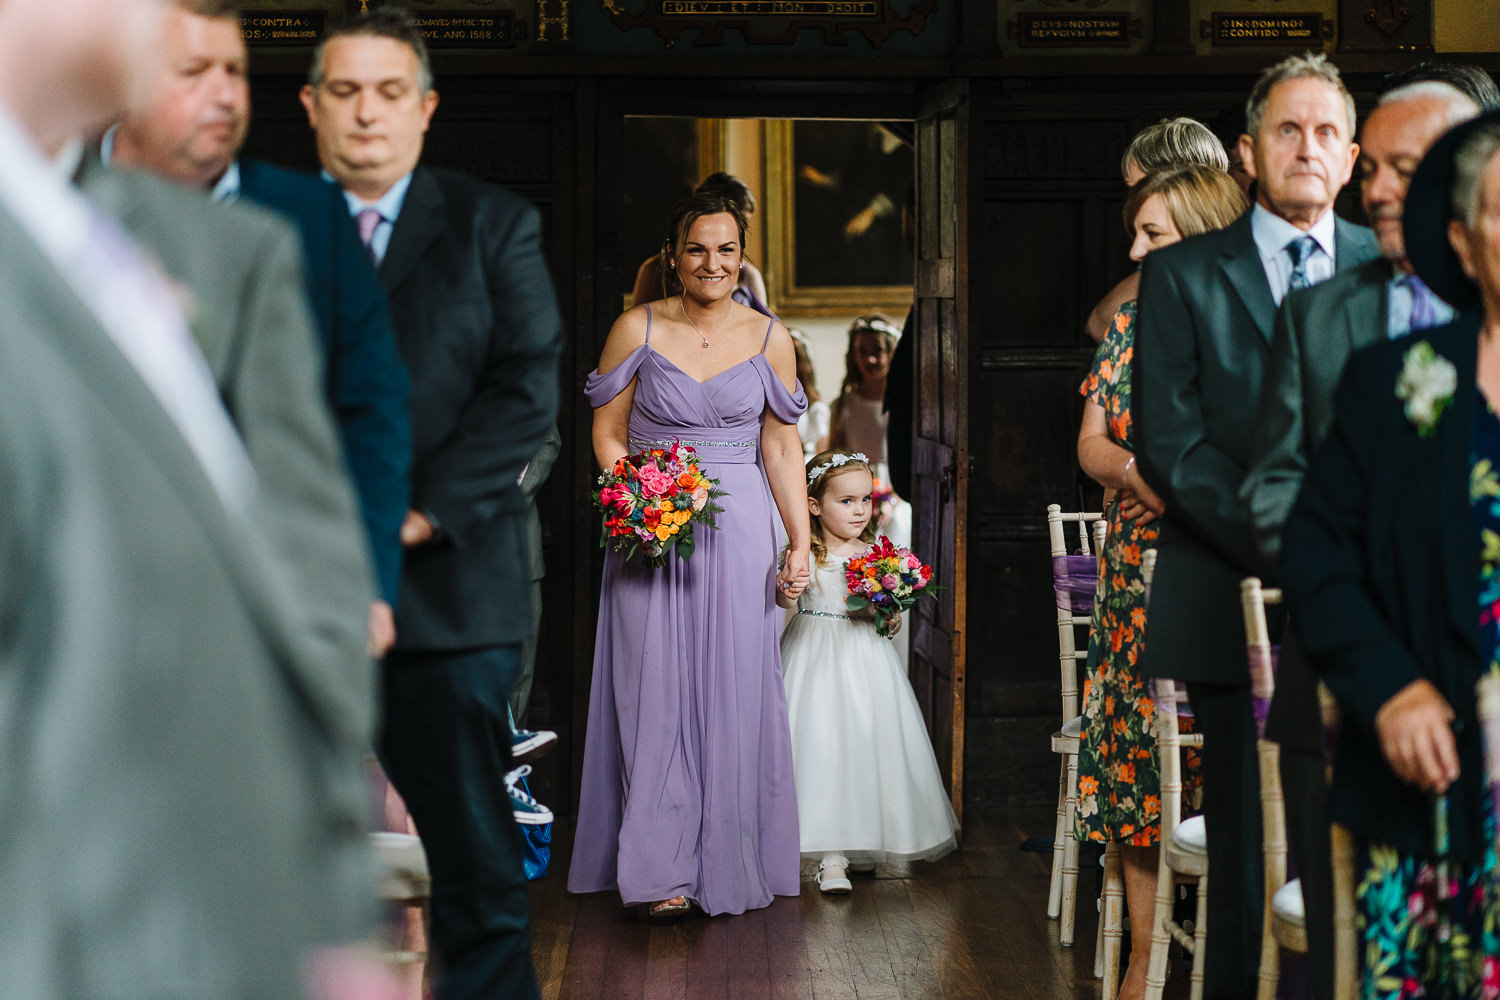 Bridesmaid and flower girl walking down the aisle